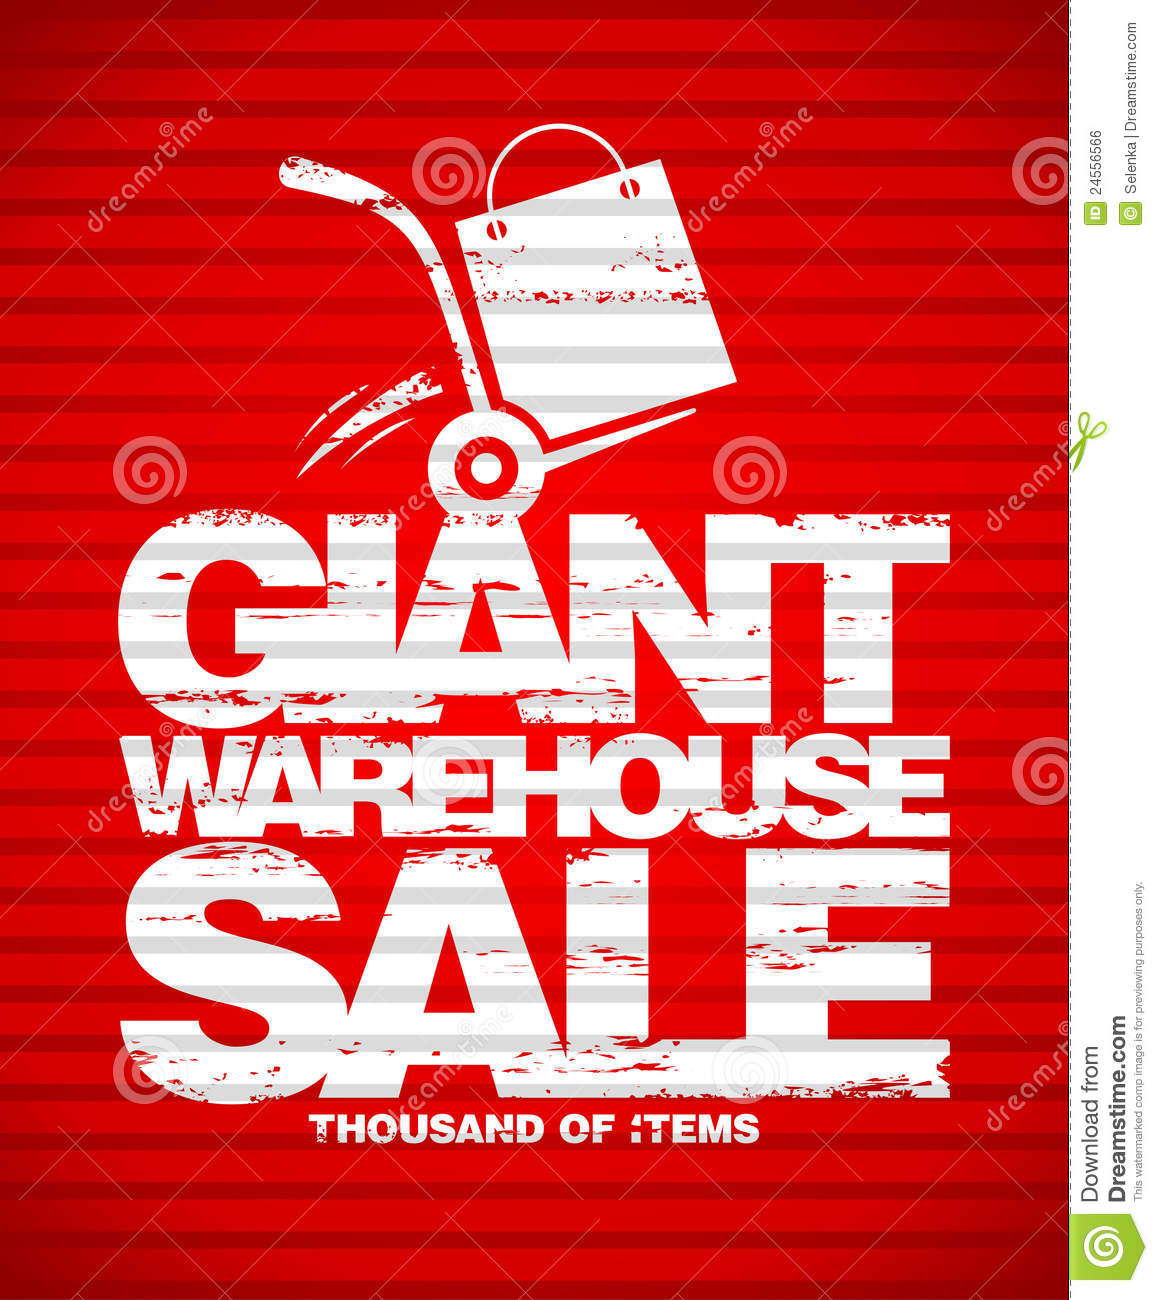 giant warehouse sale design template  royalty free stock